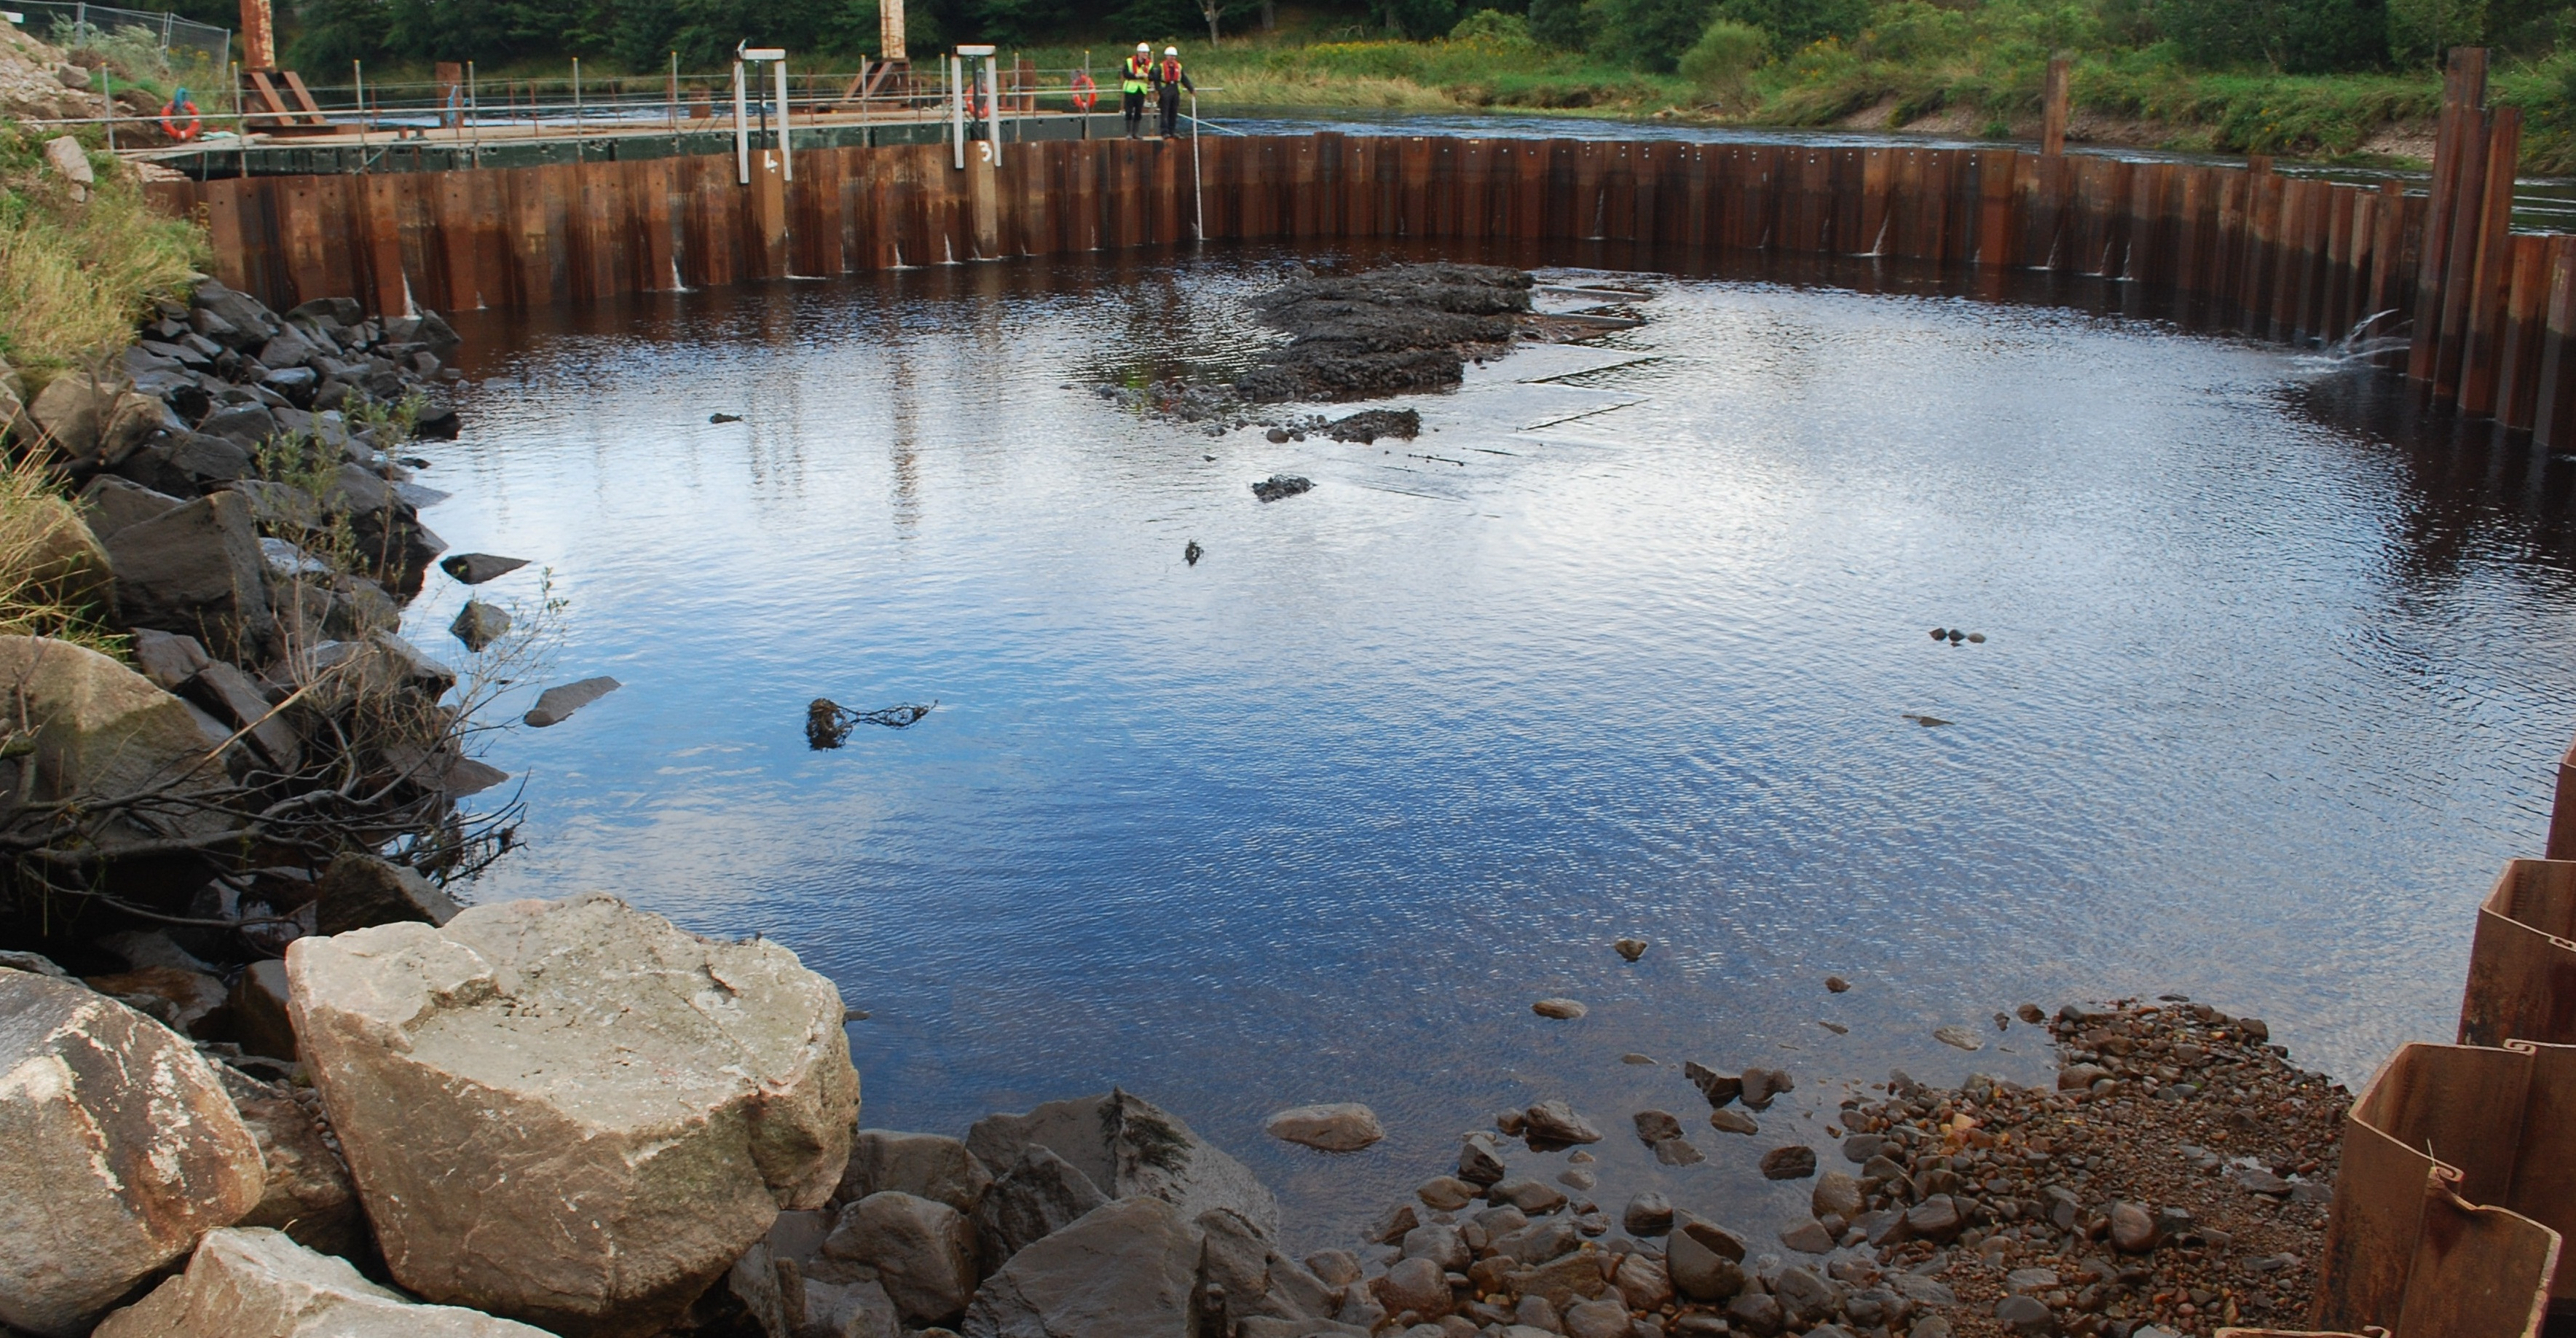 Inchgarth Cofferdam